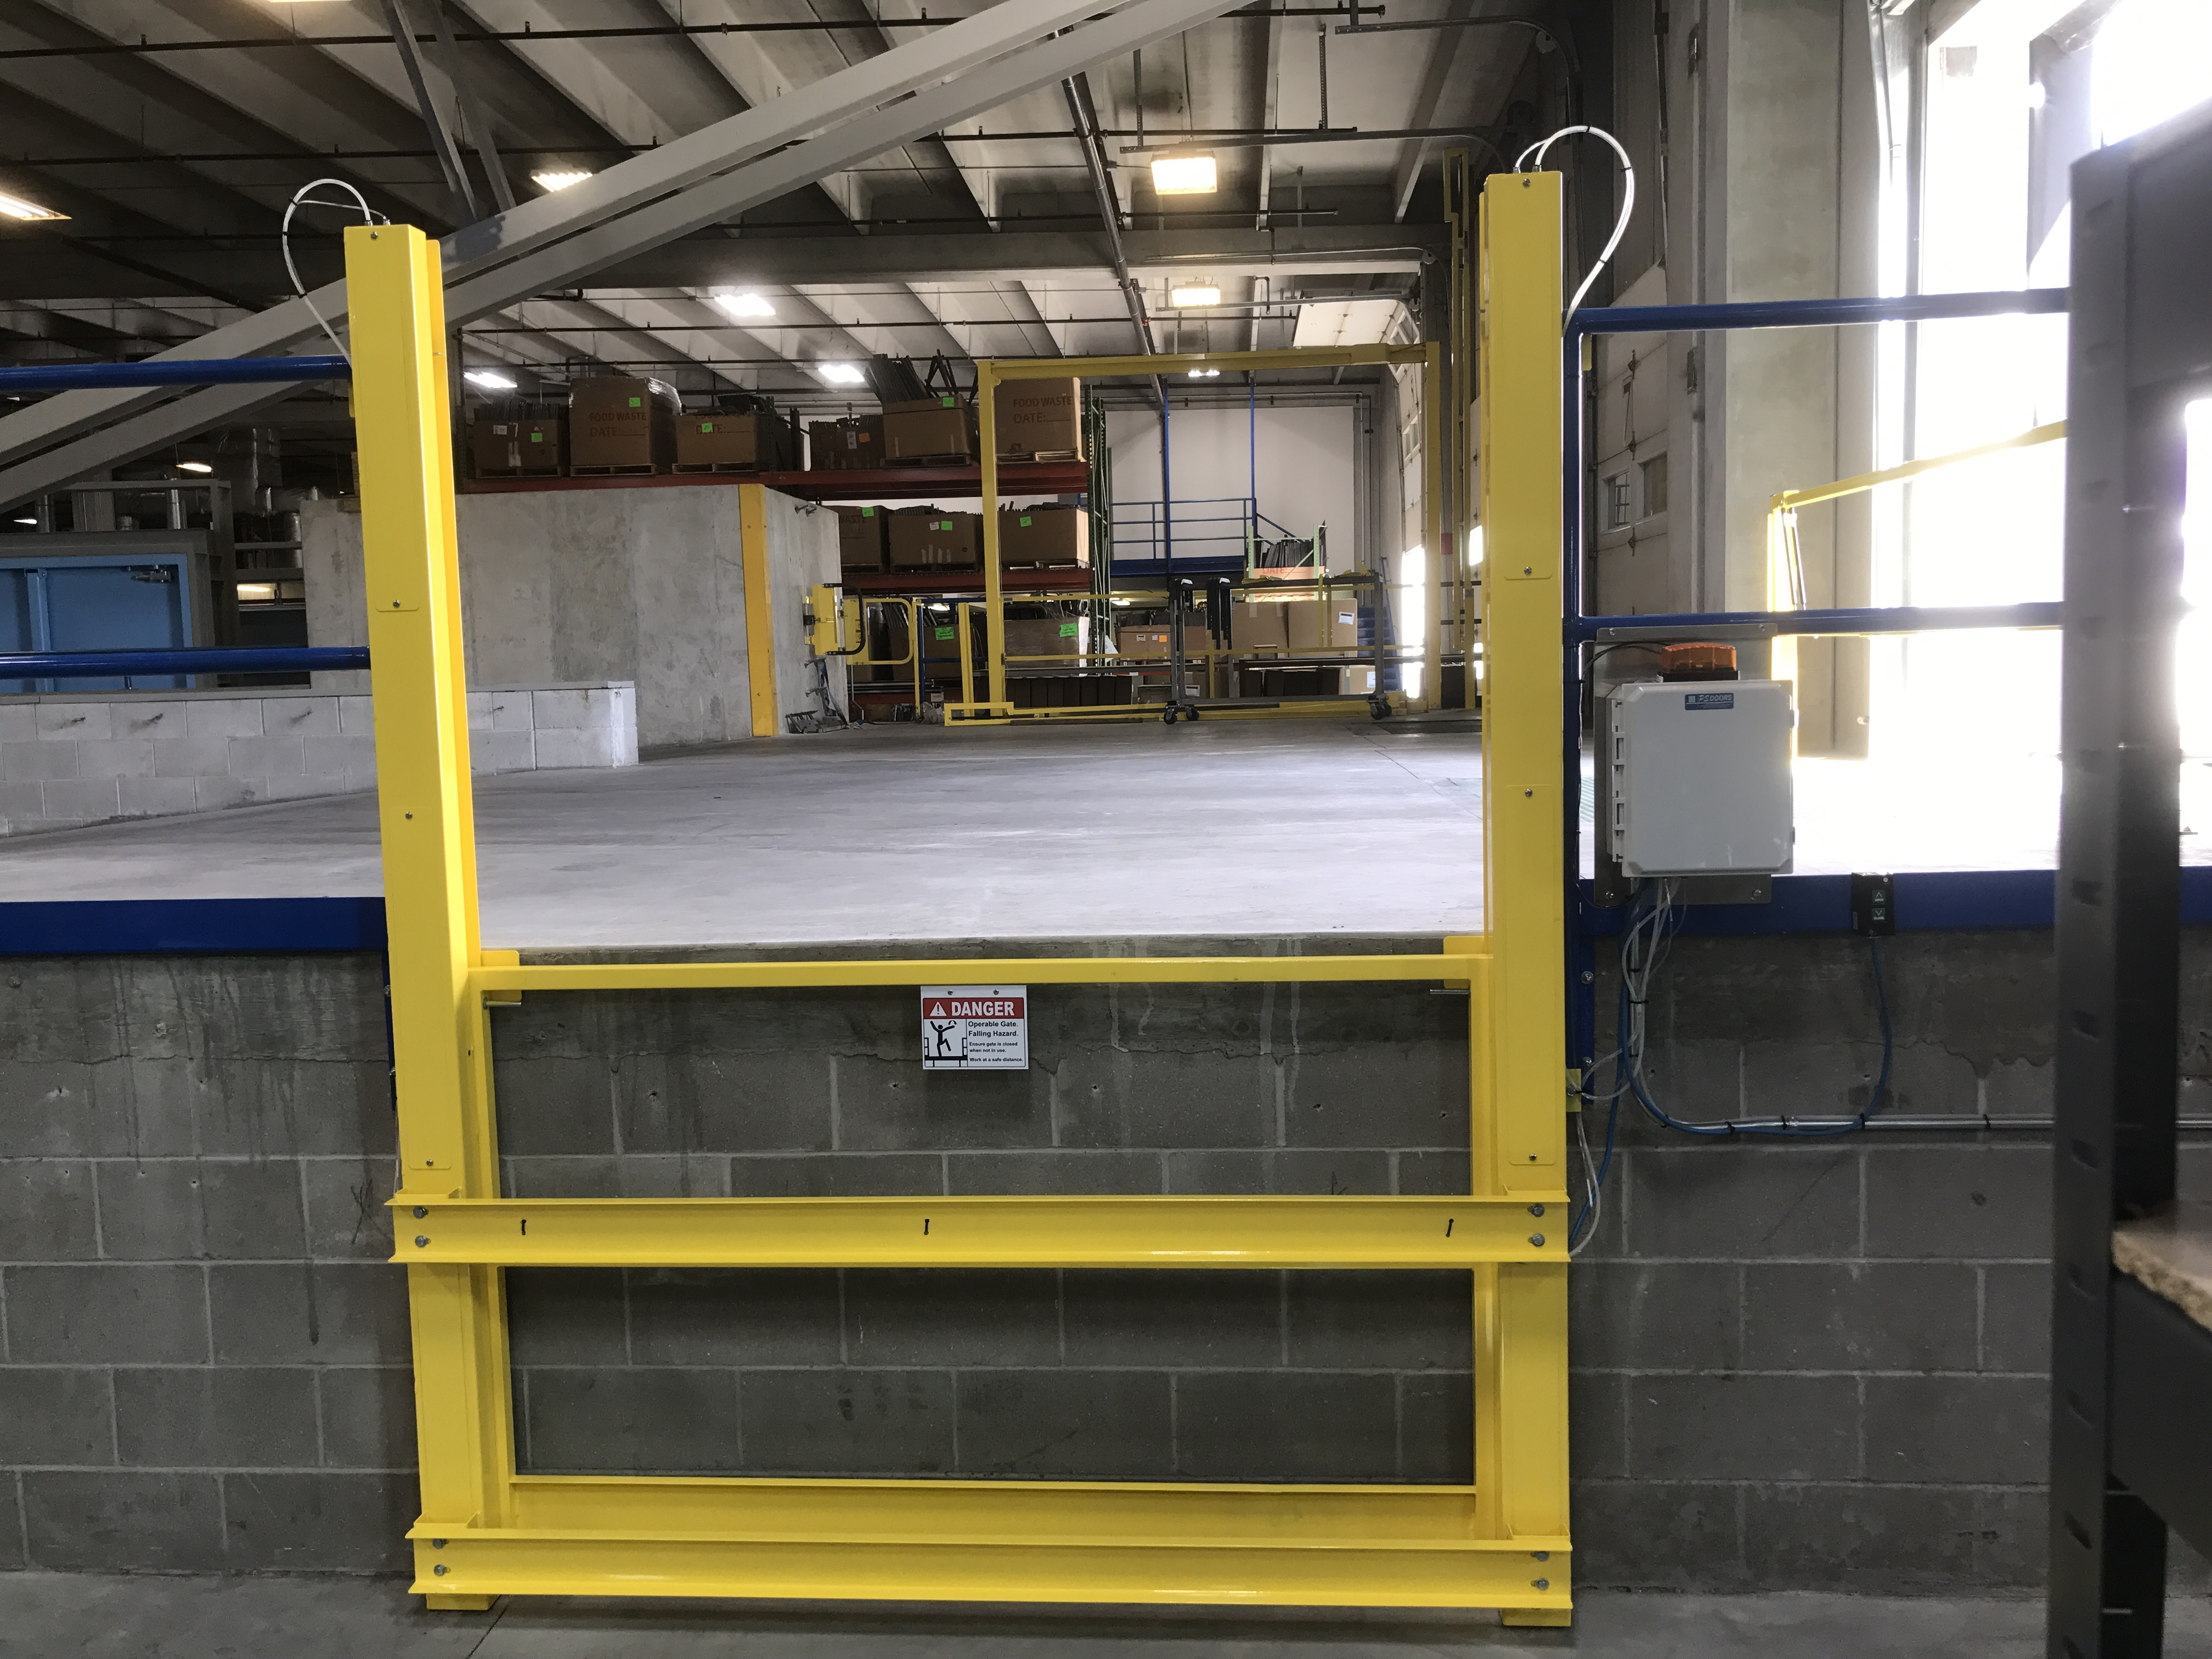 Vertical Mezzanine Safety Gate: Industrial Railings